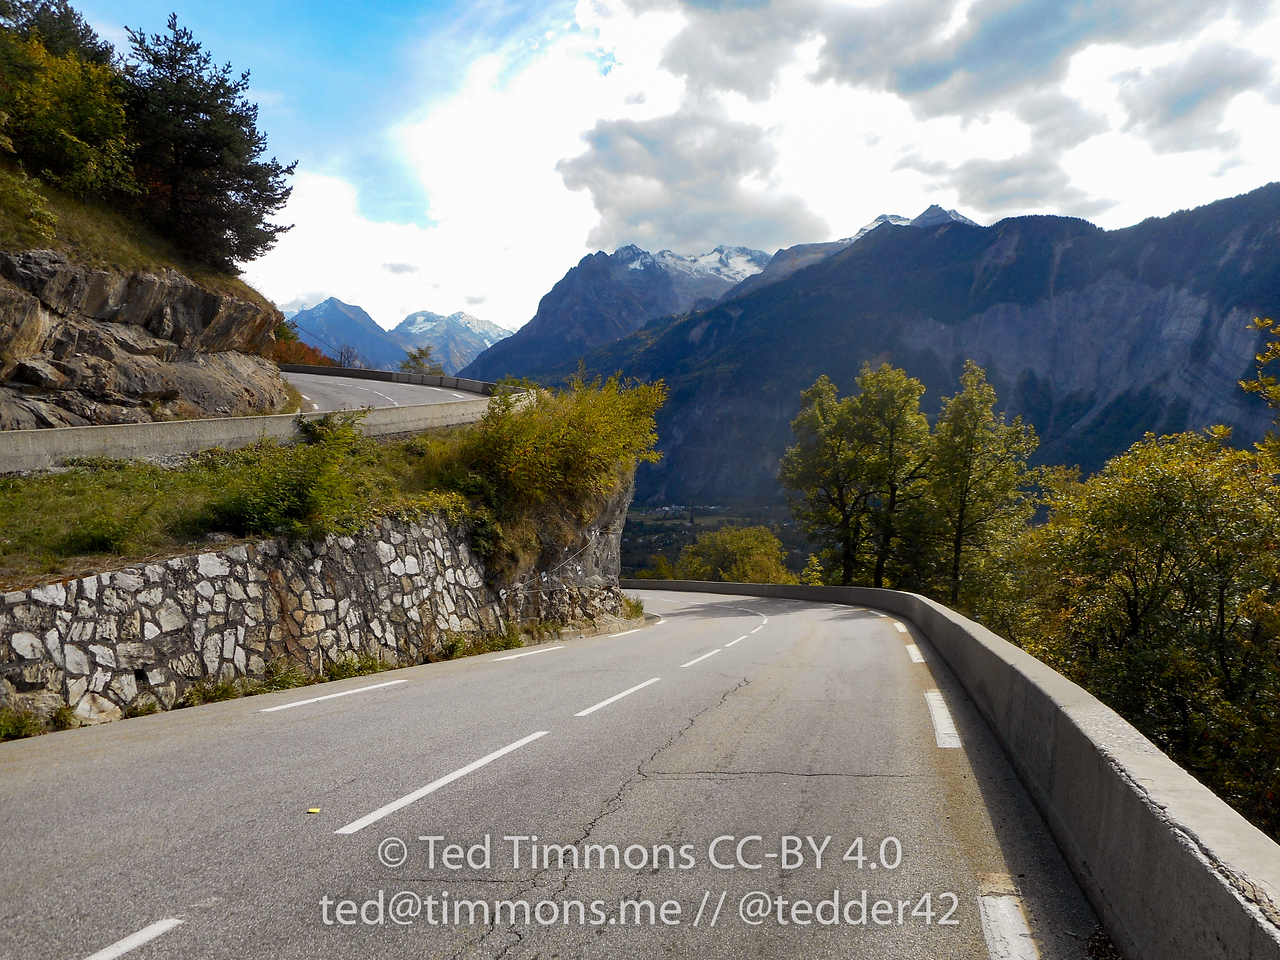 Looking up and down the ramps of Alpe d'Huez.